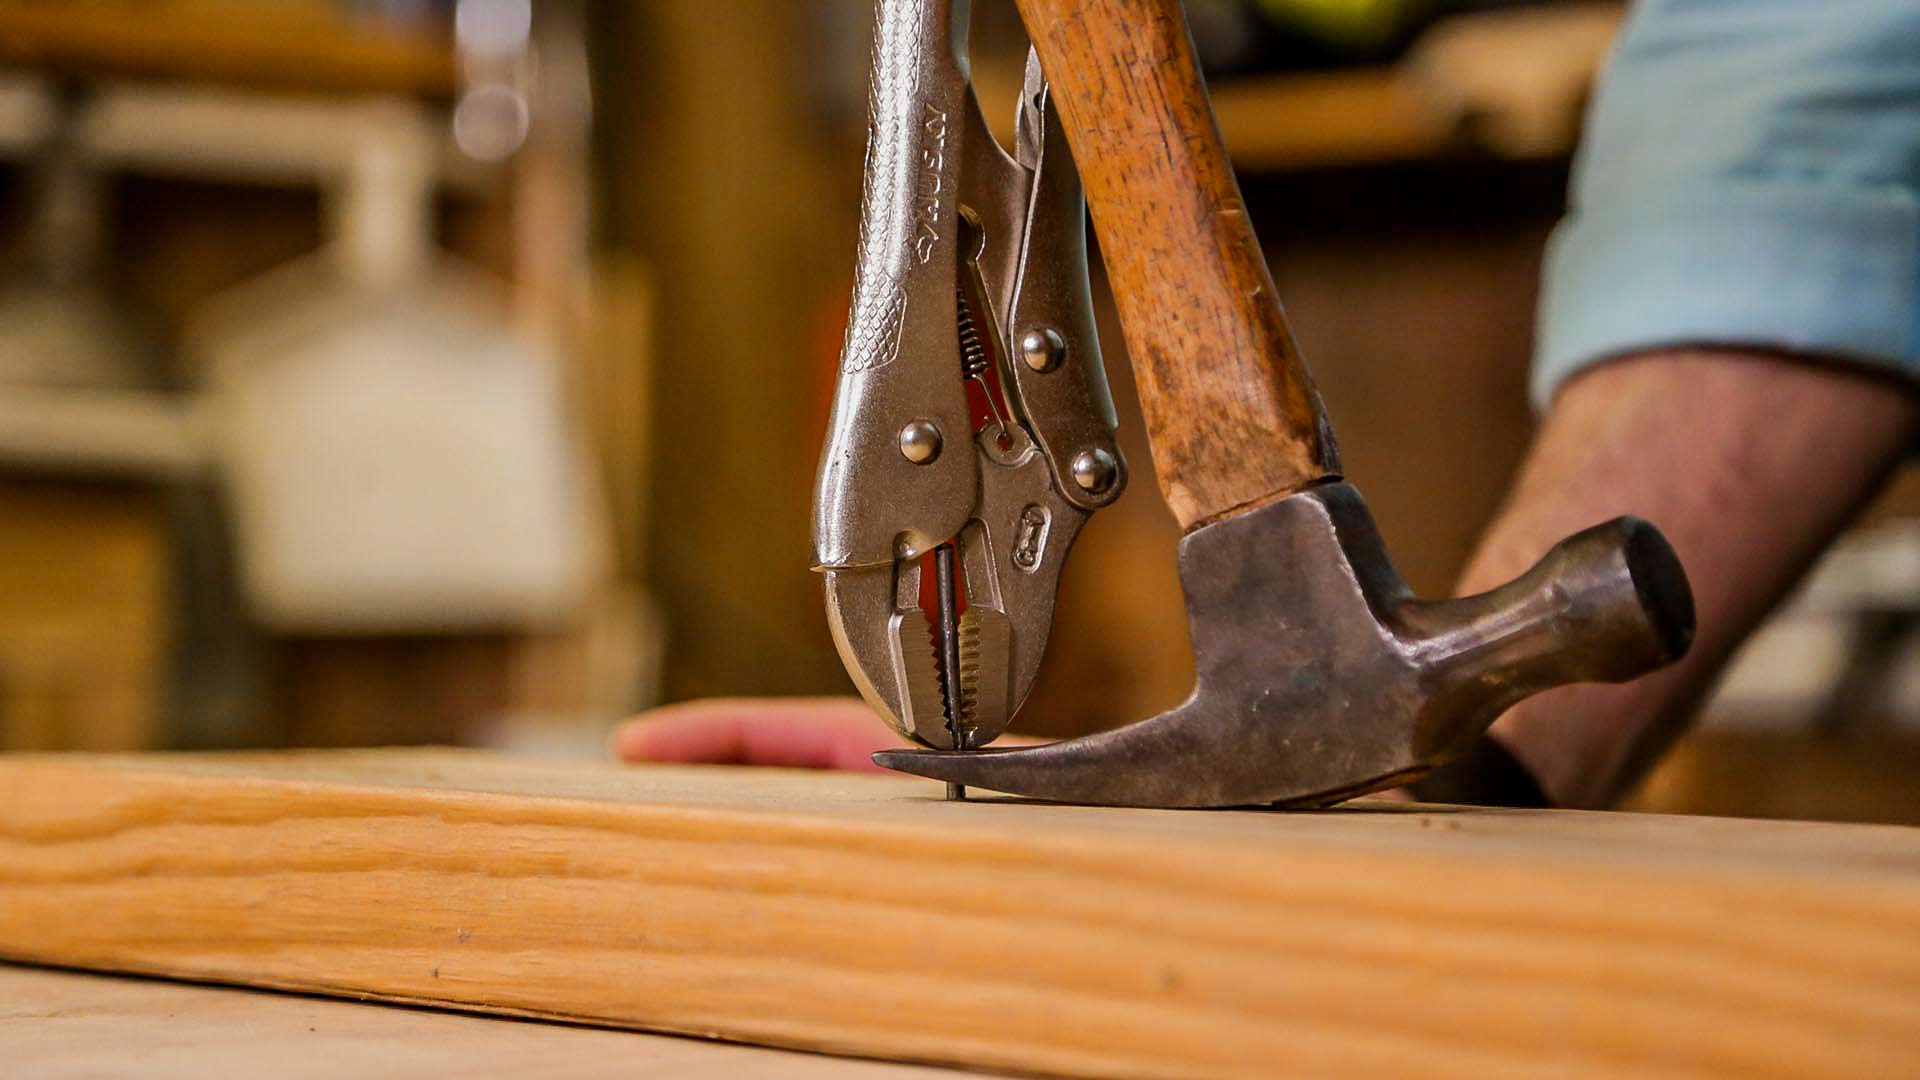 Joe Truini removes a nail from lumber with a hammer and a pair of locking pliers